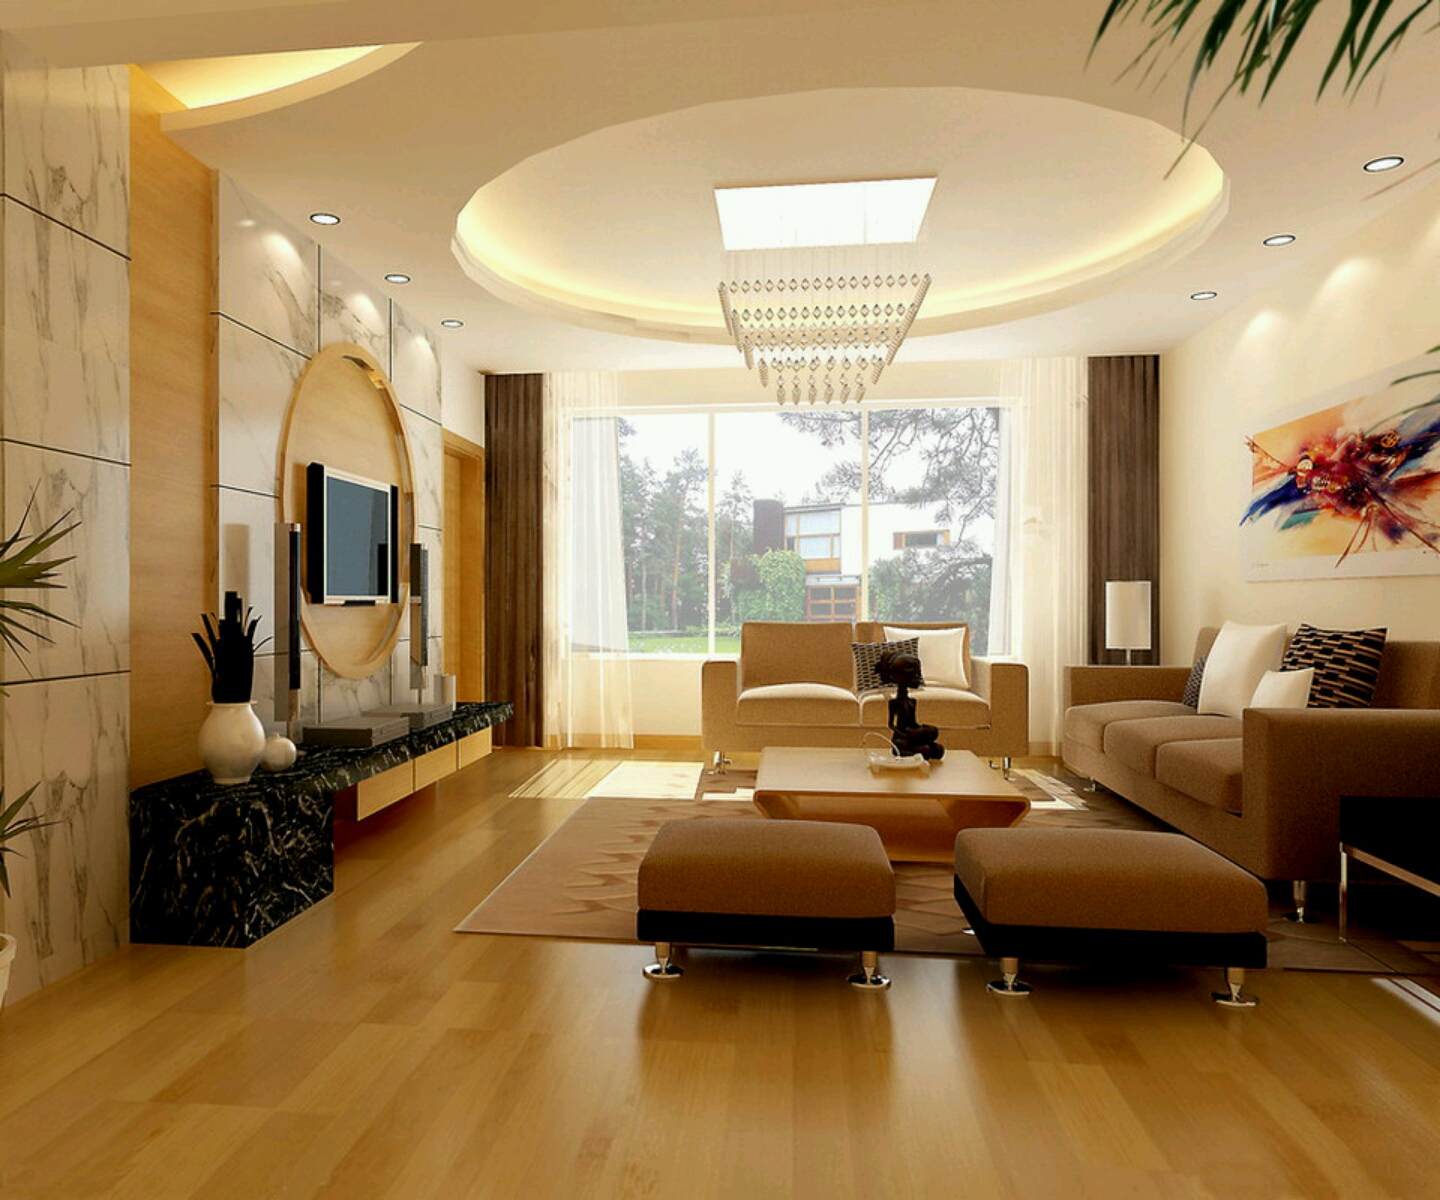 Modern interior decoration living rooms ceiling designs for House room design ideas